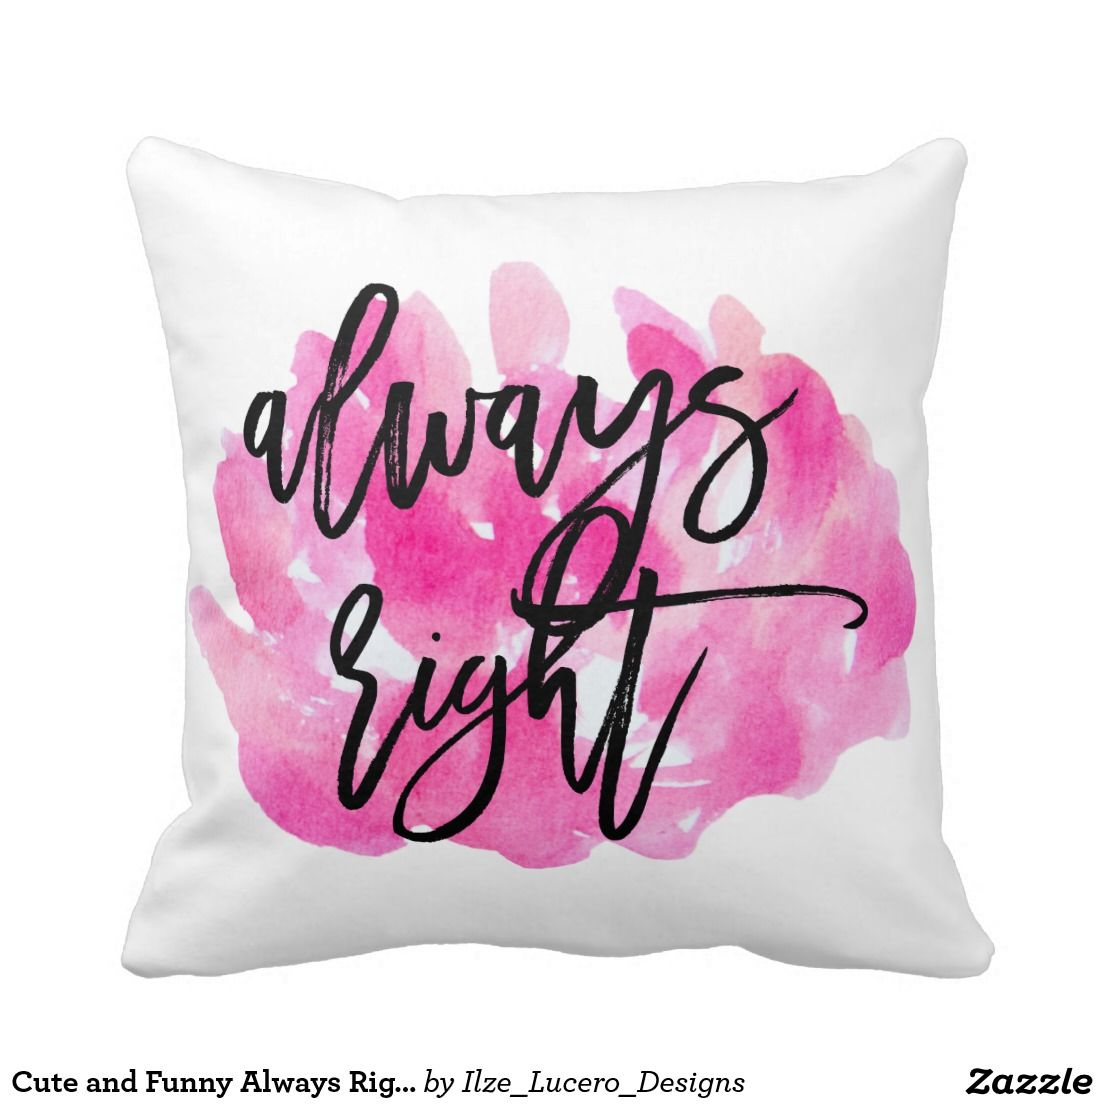 Cute and Funny Always Right Throw Pillow | Wedding Things ...